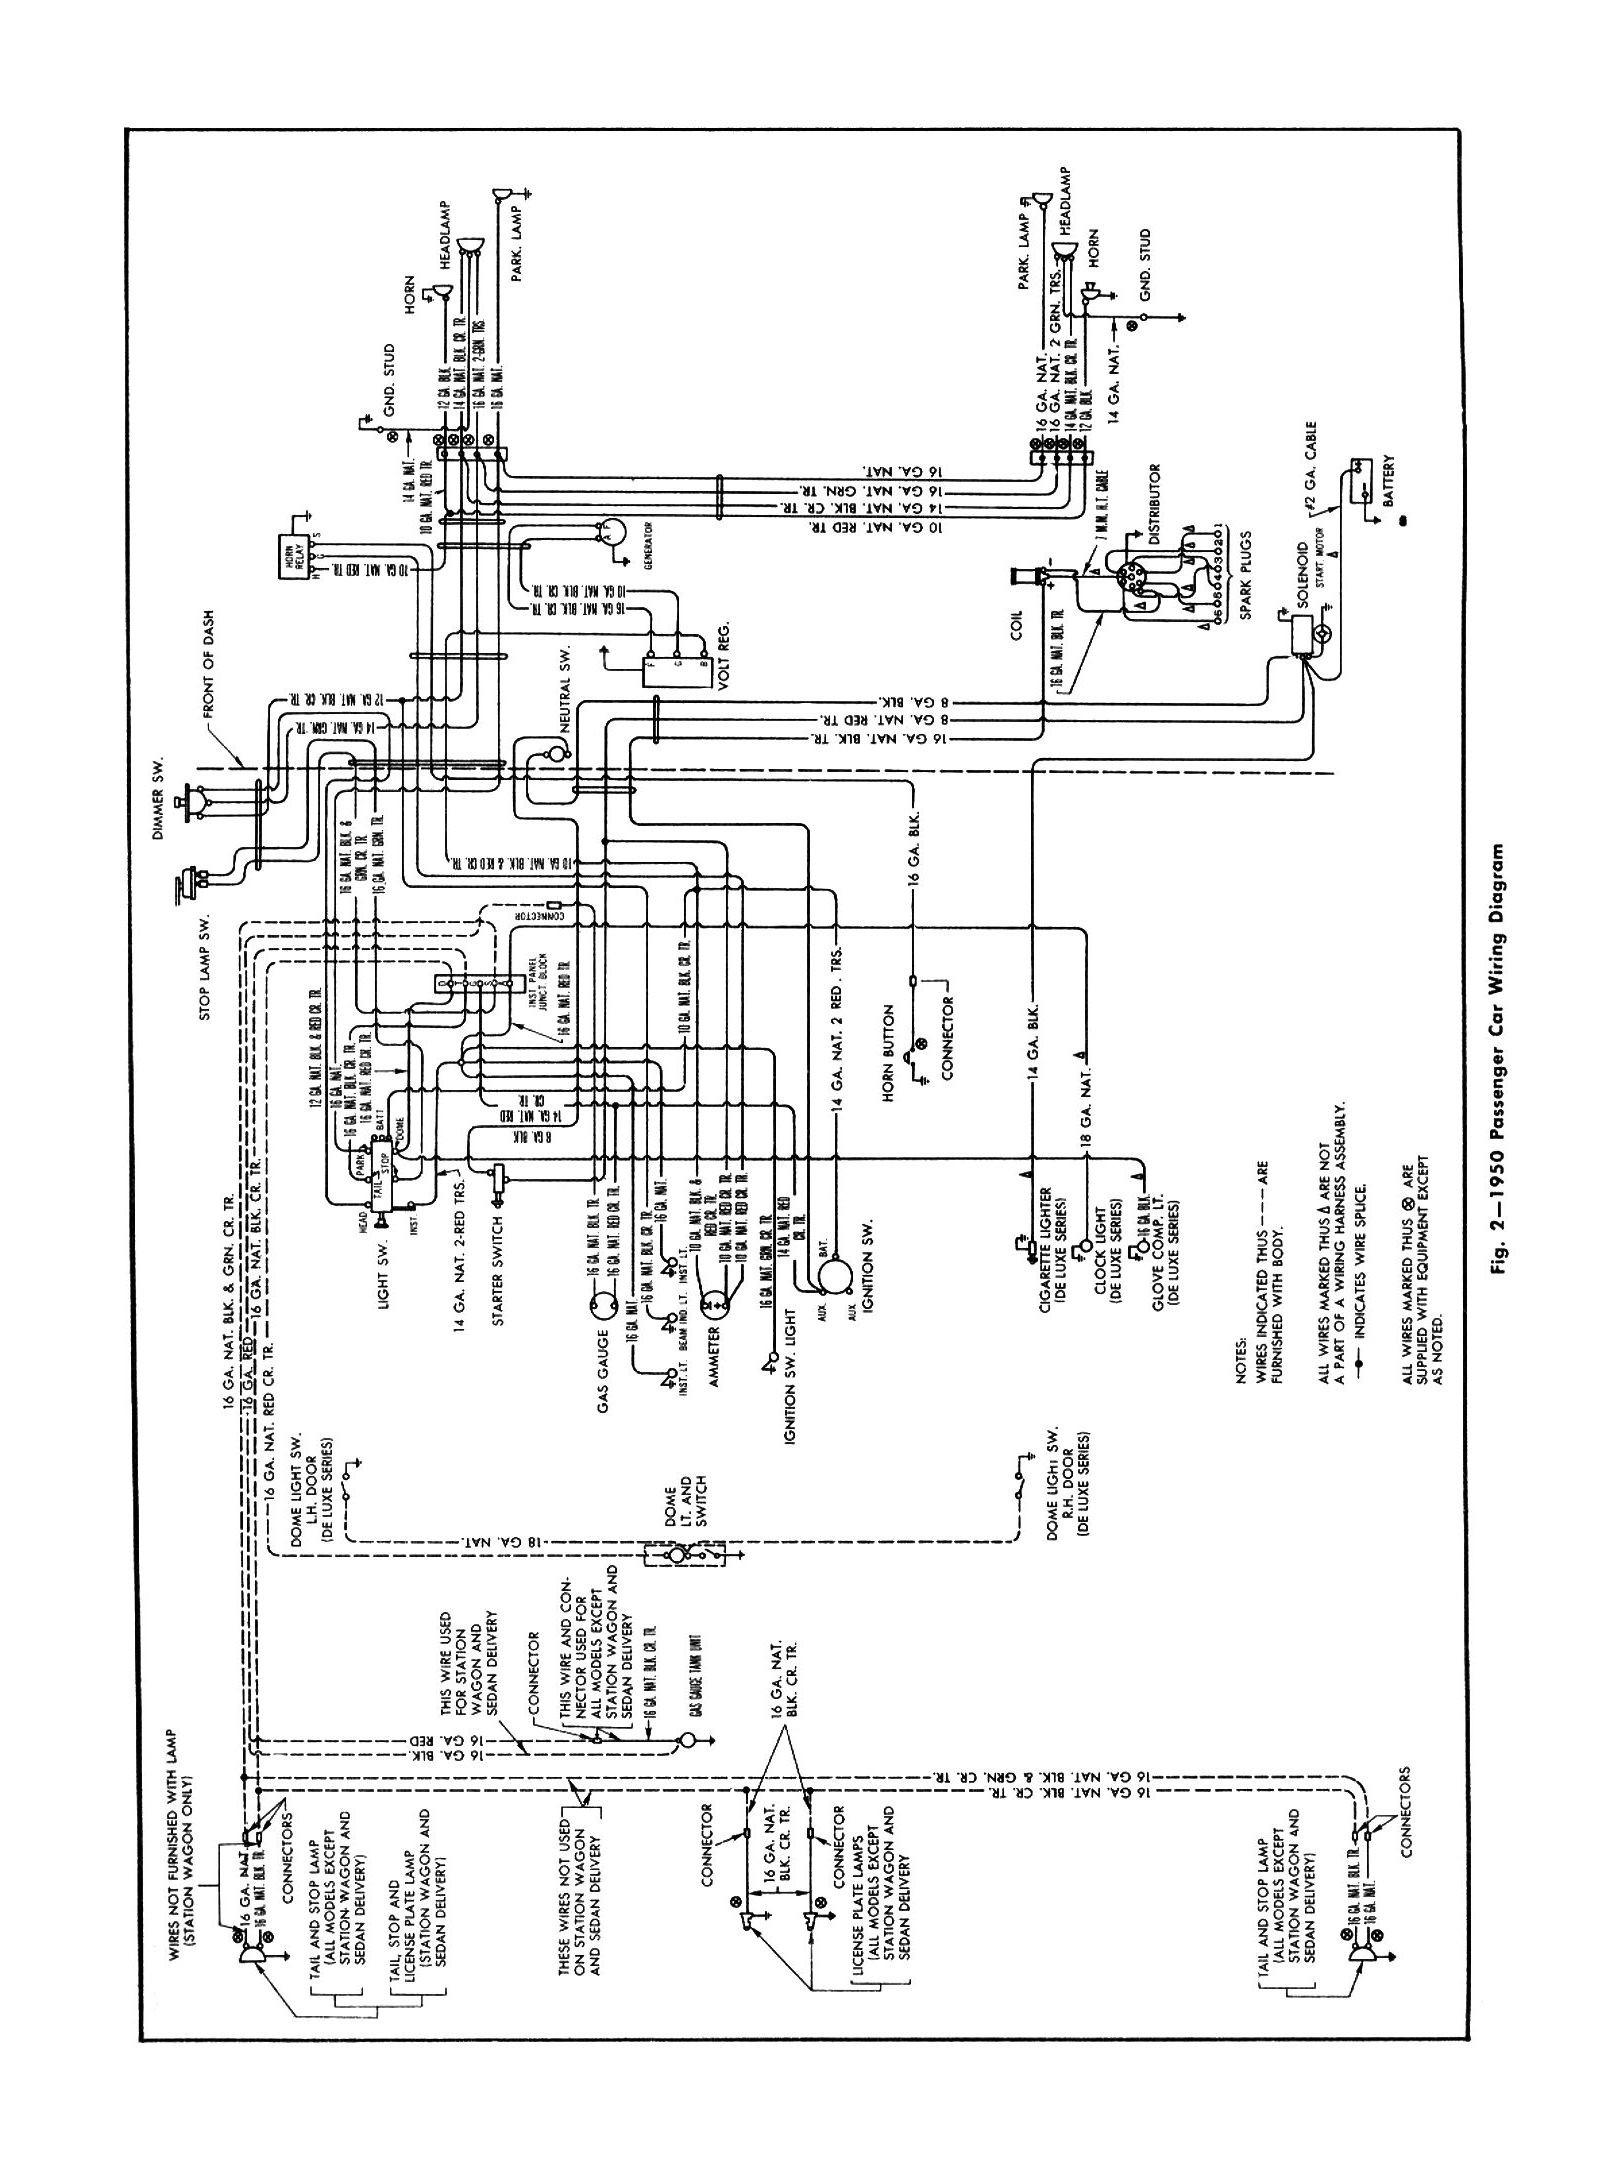 1950 Chevy Wiring Harness Diagram Schemes Engine Image Details Car Opinions About U2022 Horn